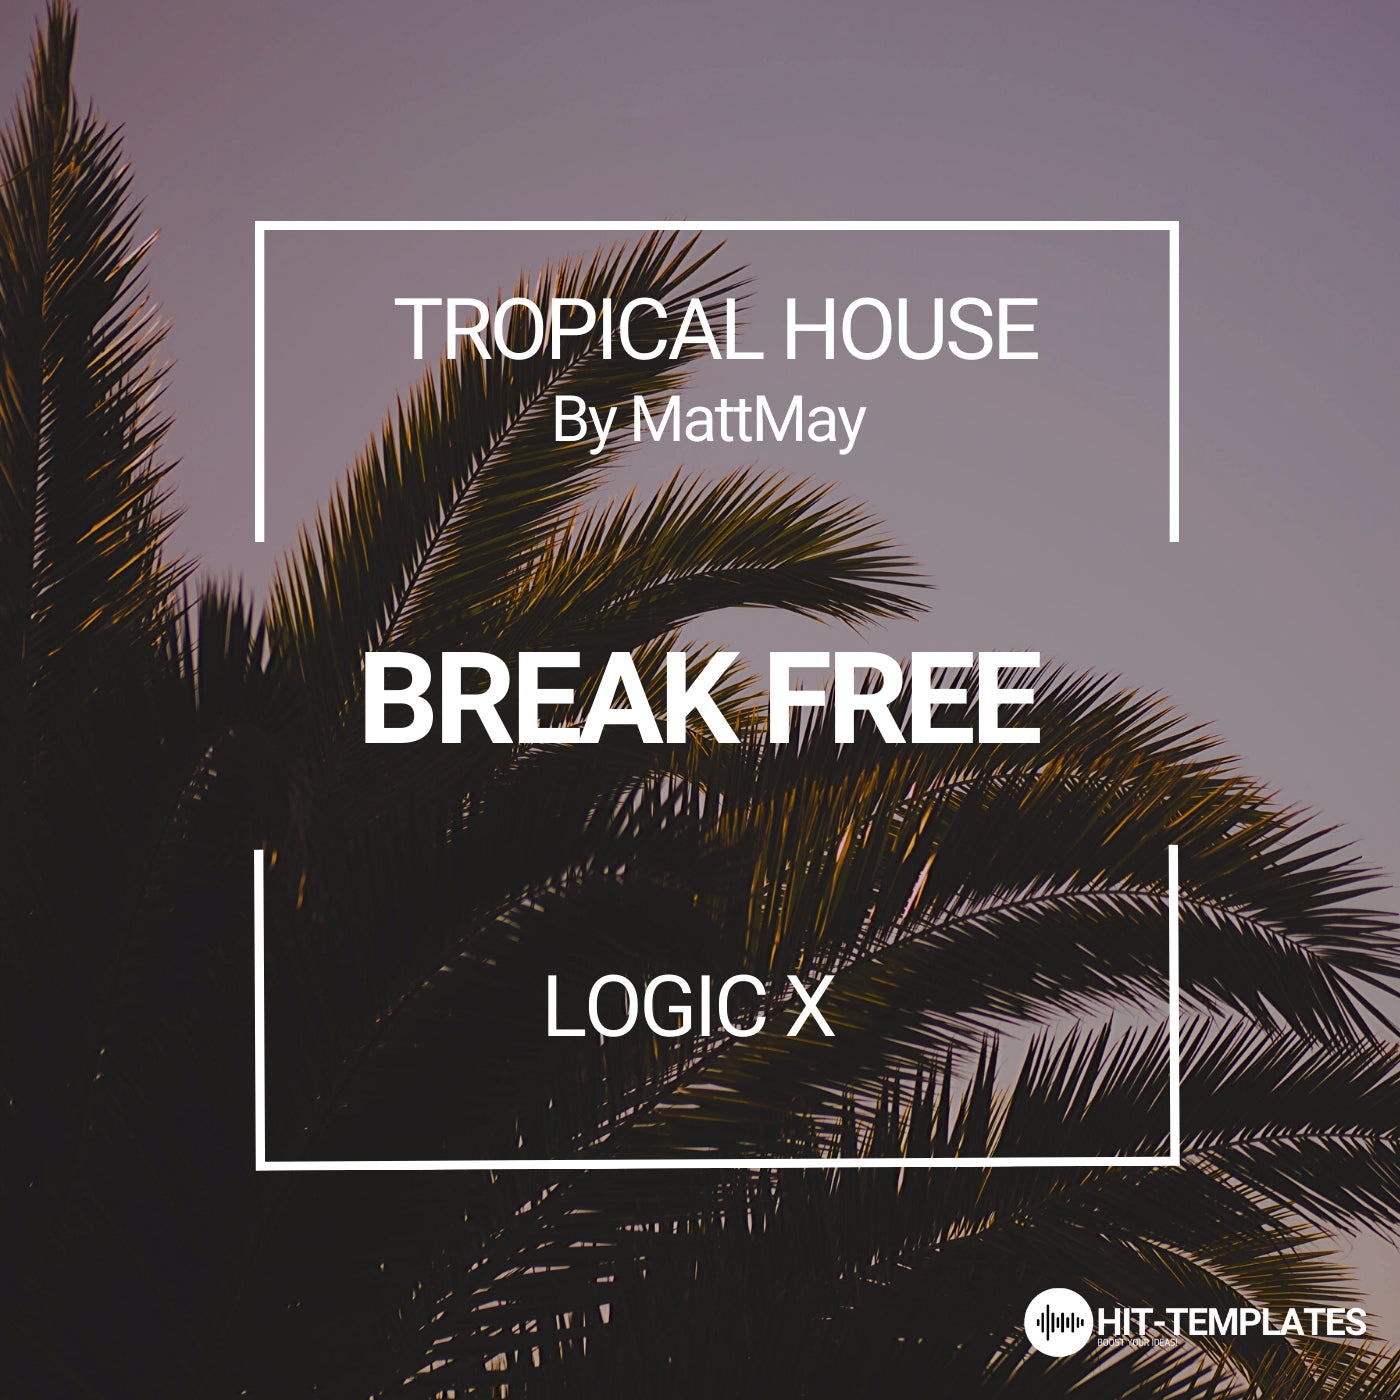 BREAK FREE - TROPICAL HOUSE